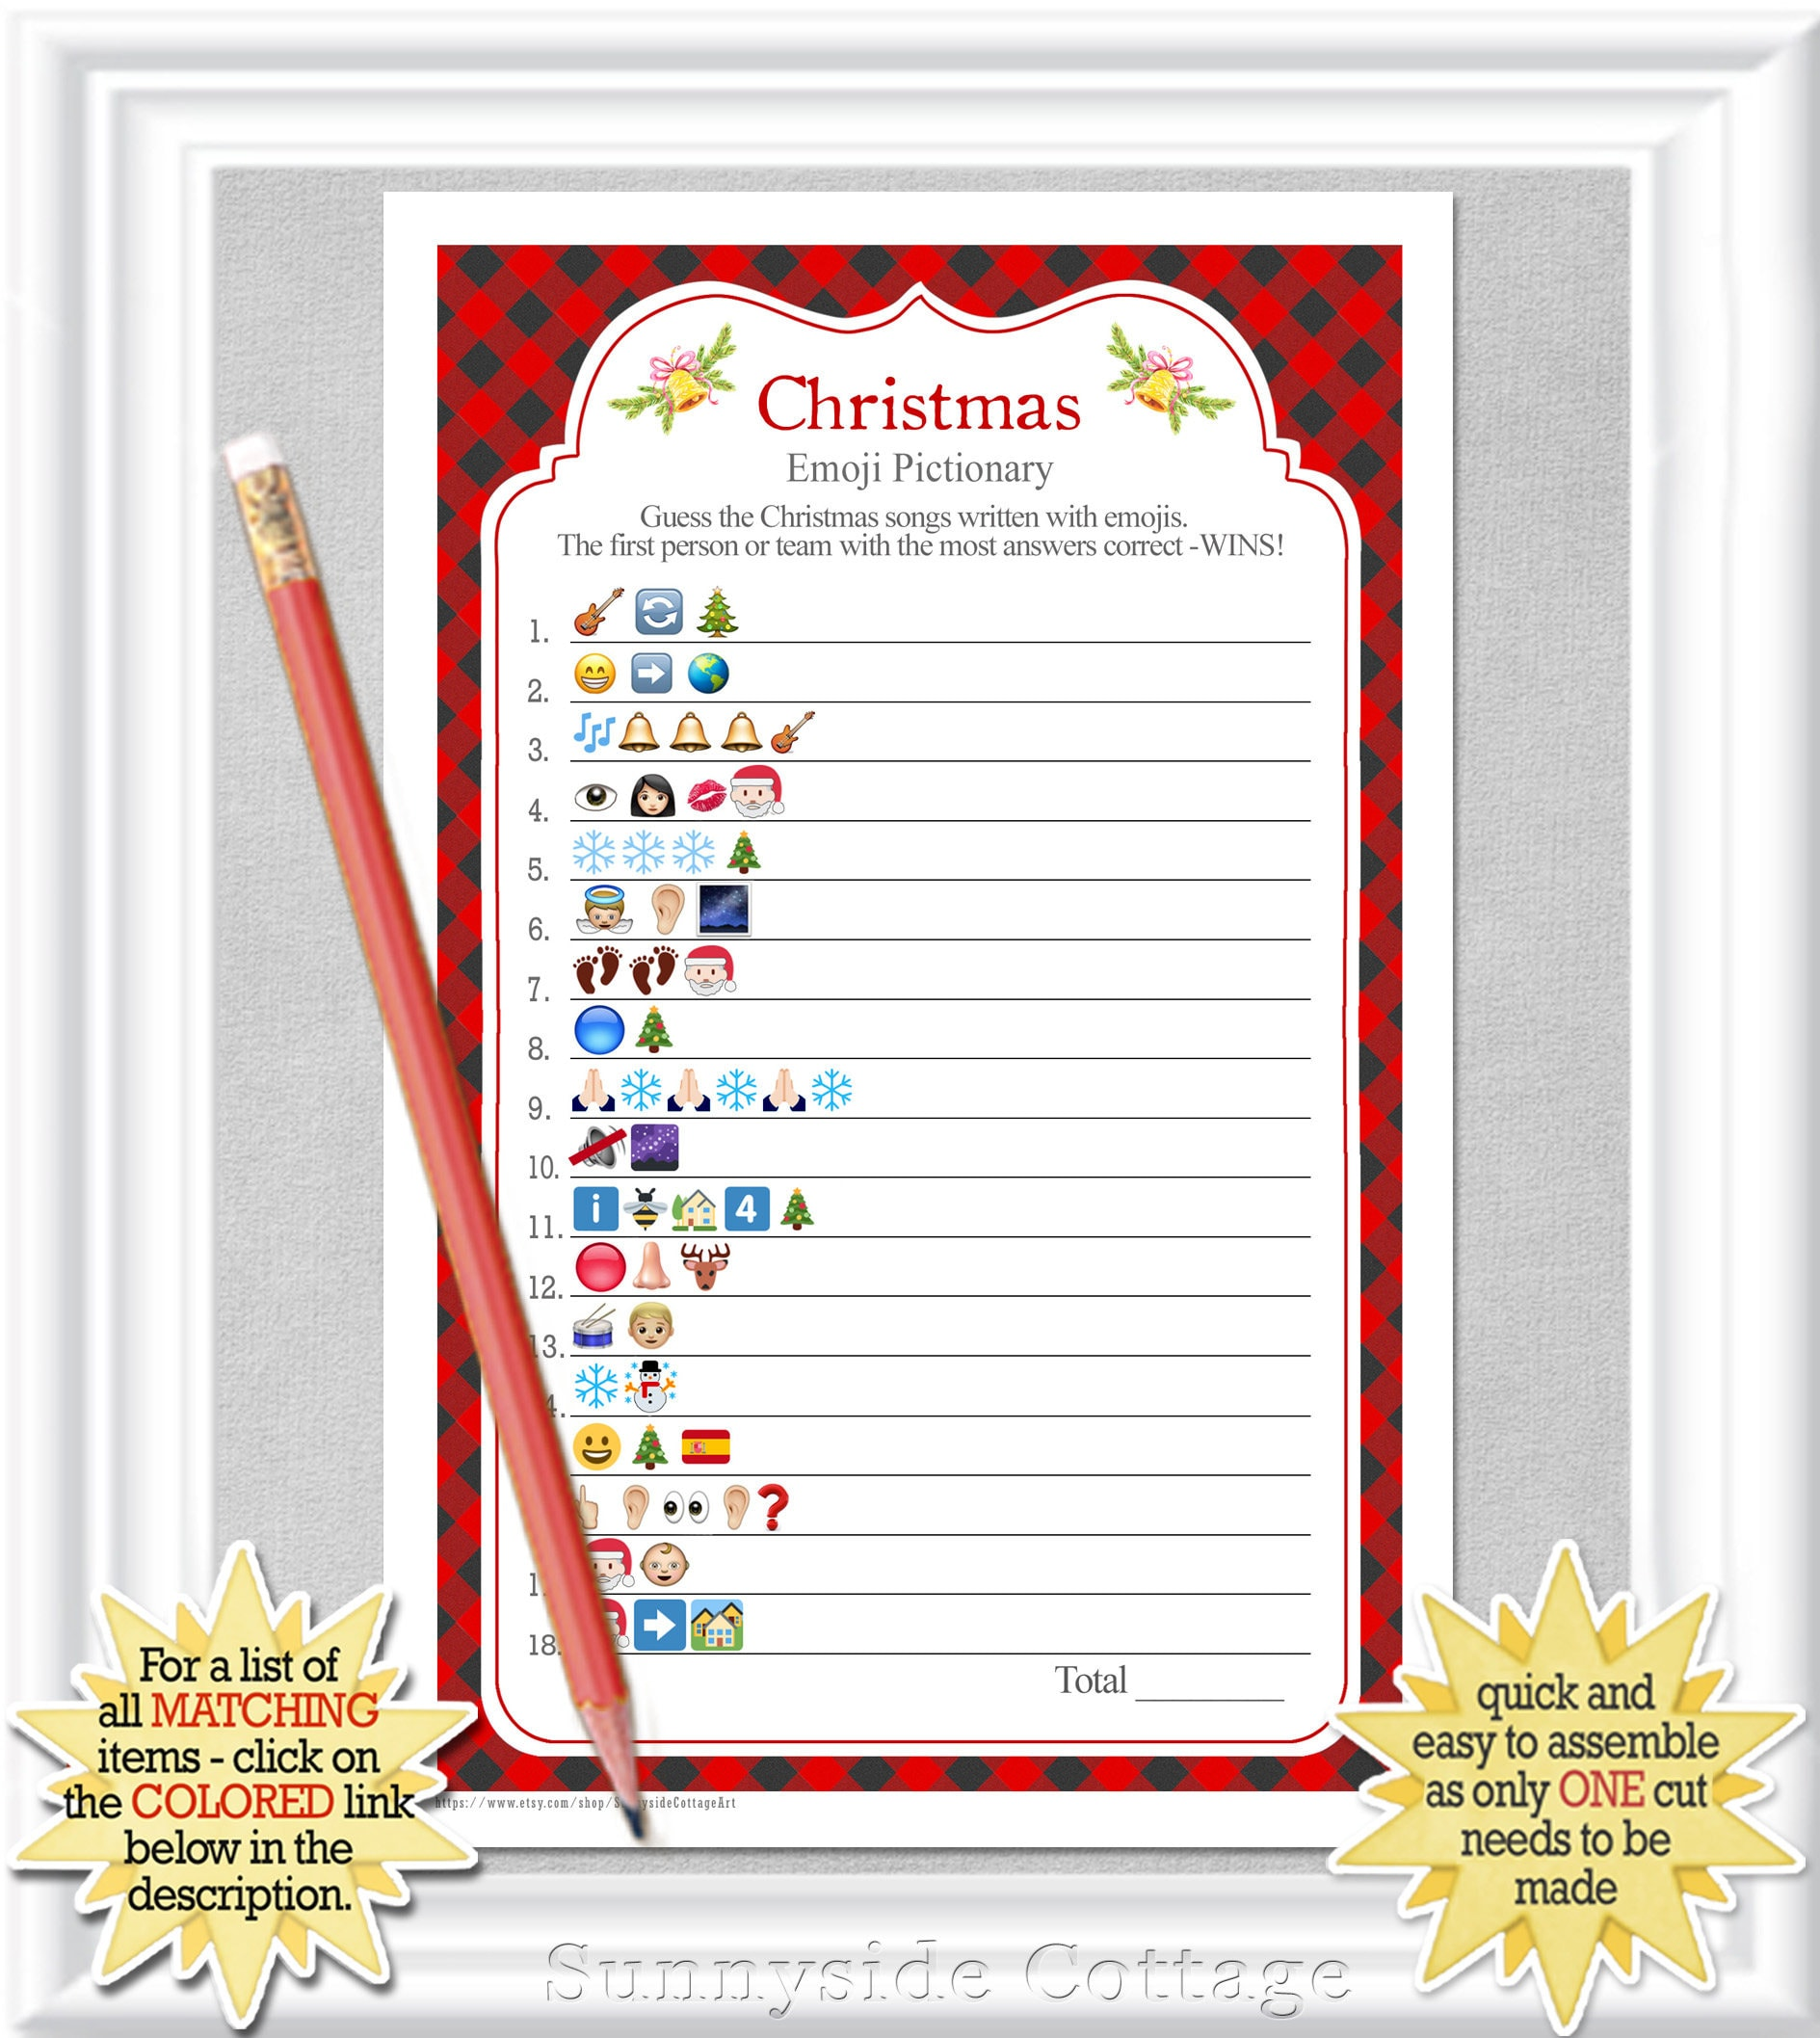 Instant Download Christmas Songs Emoji Pictionary With A Red